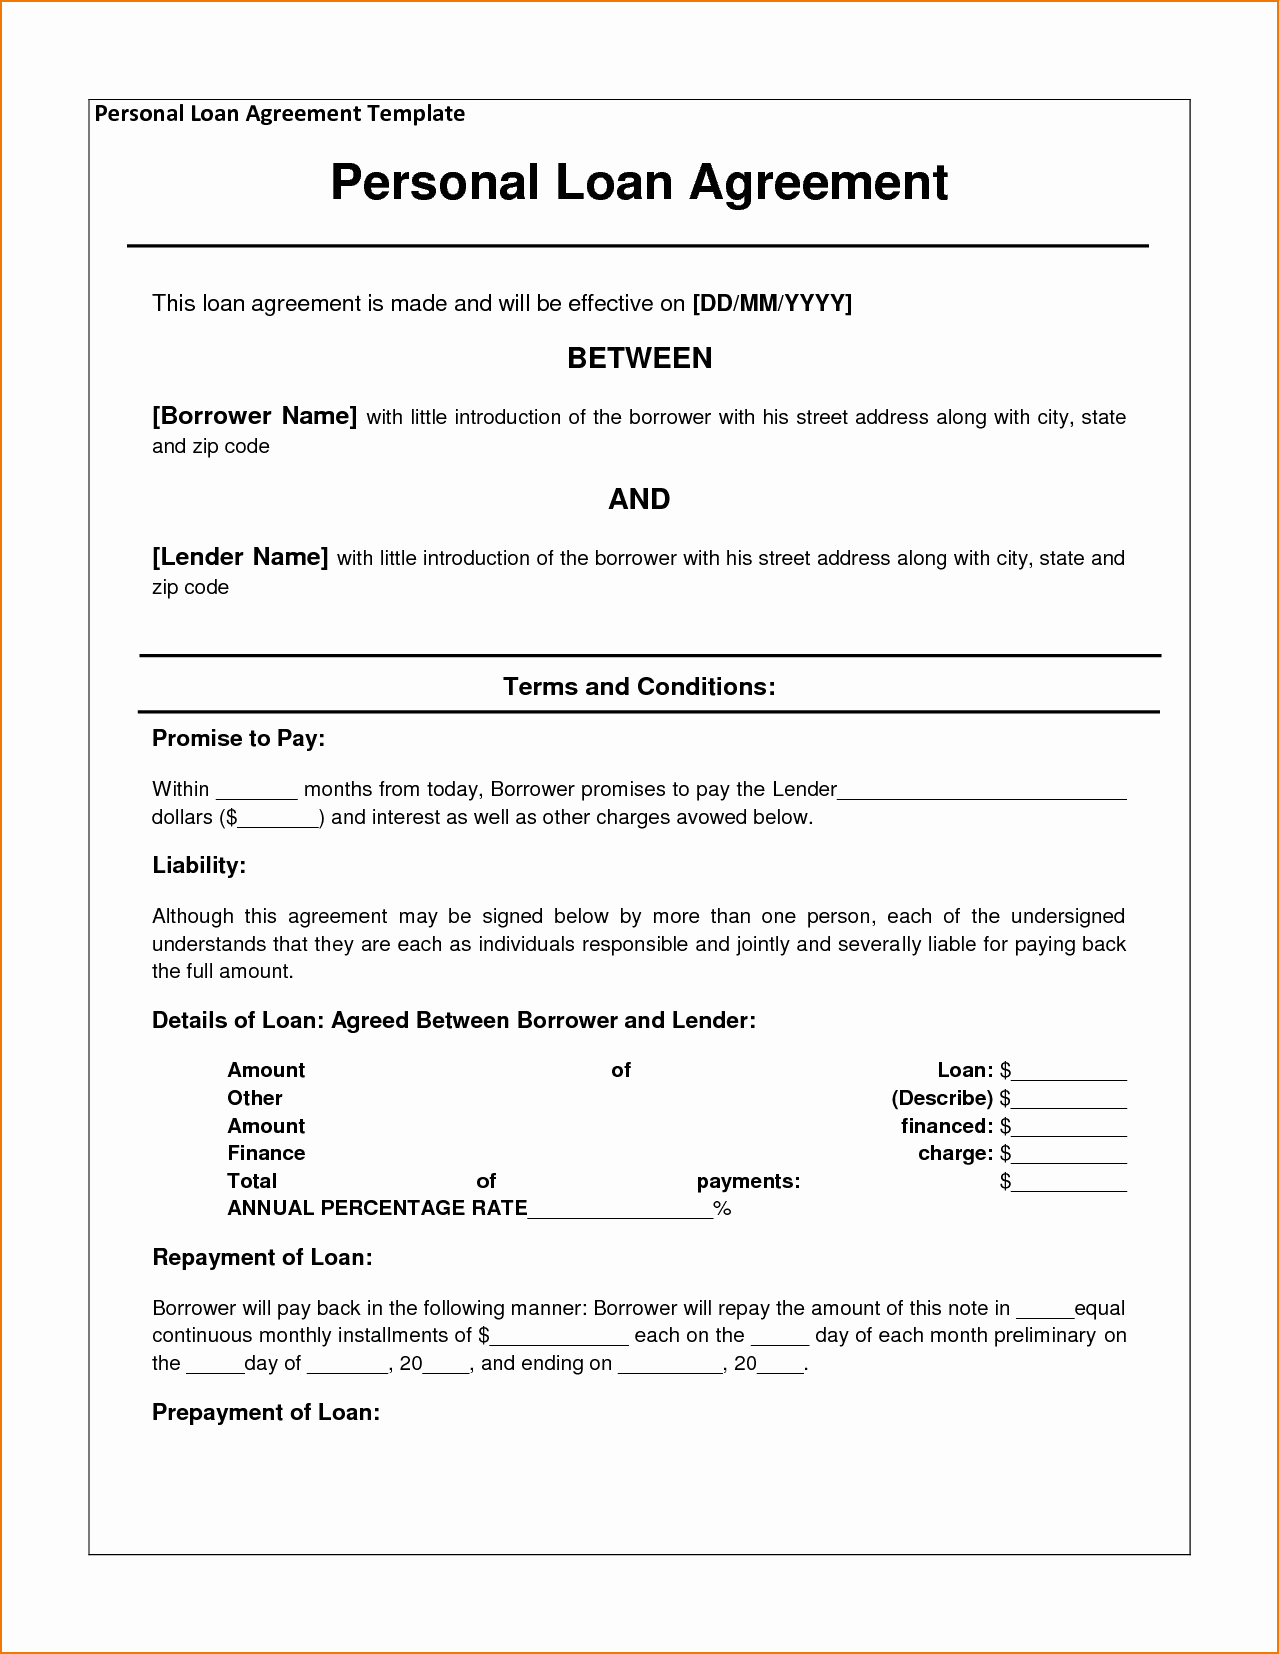 Home Equity Loan Agreement Template New 5 Sample Personal Loan Agreement